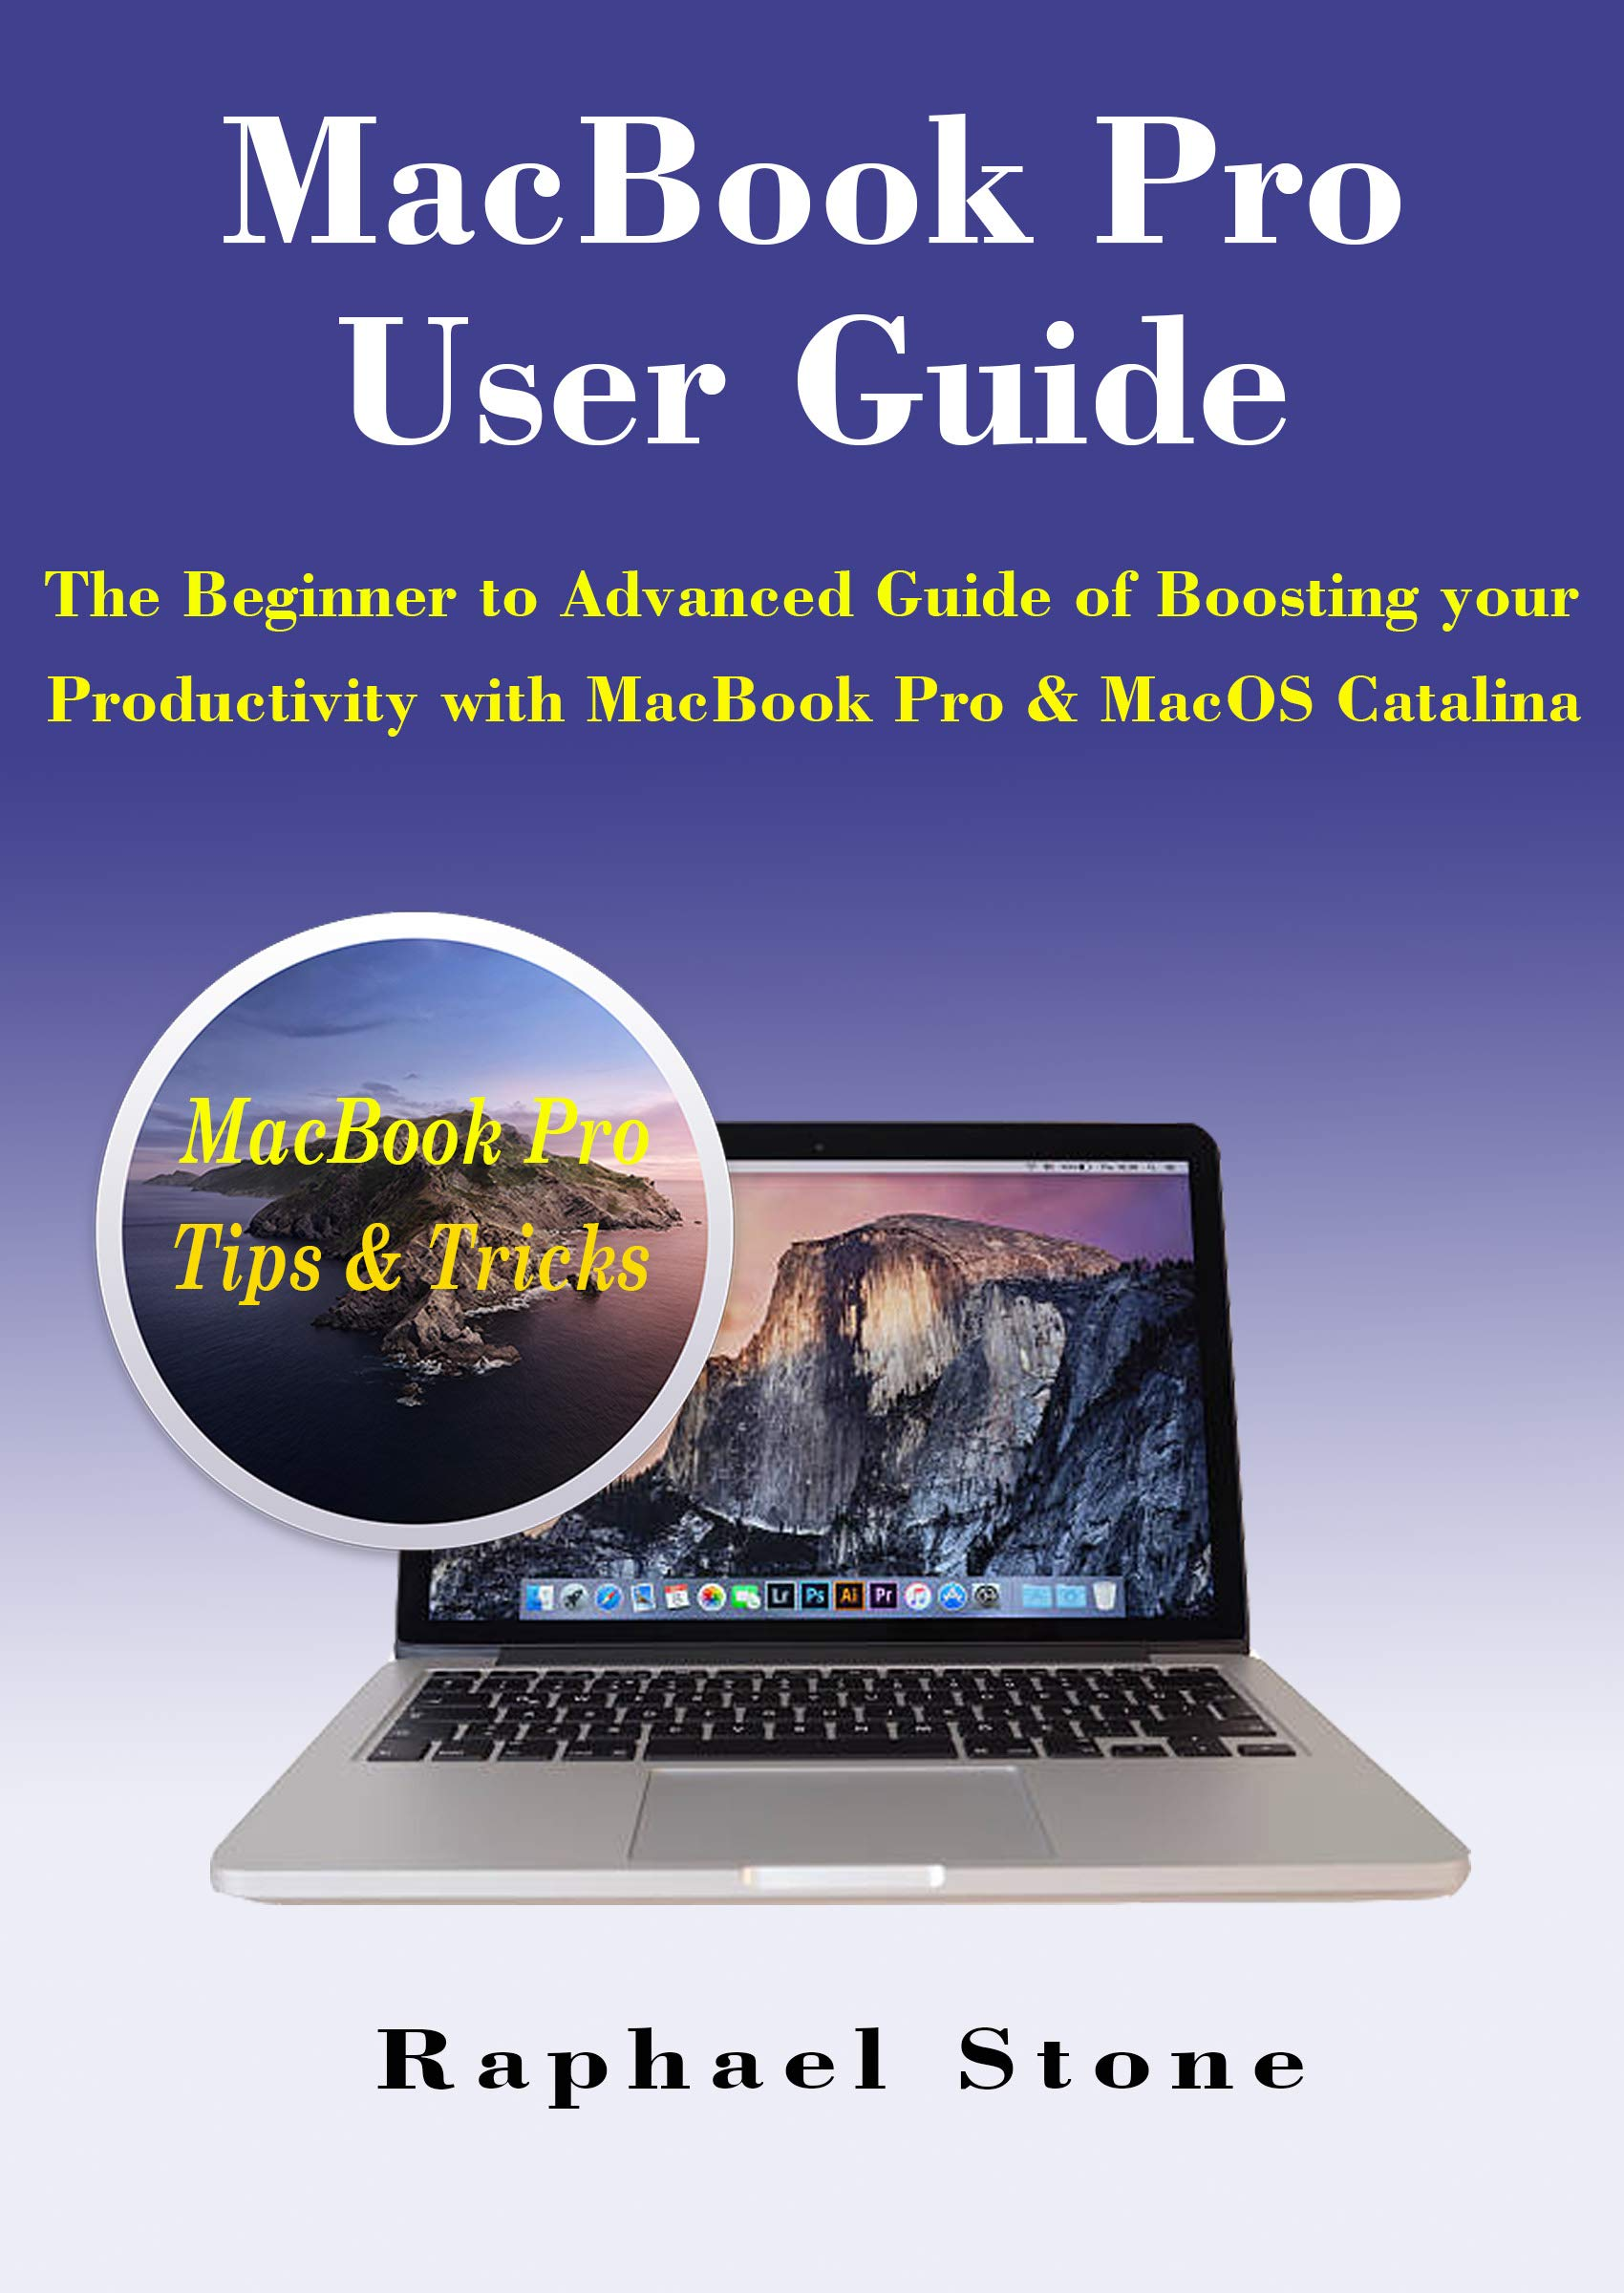 MacBook Pro User Guide: The Beginner to Advanced Guide of Boosting your Productivity with MacBook Pro & MacOS Catalina (English Edition)